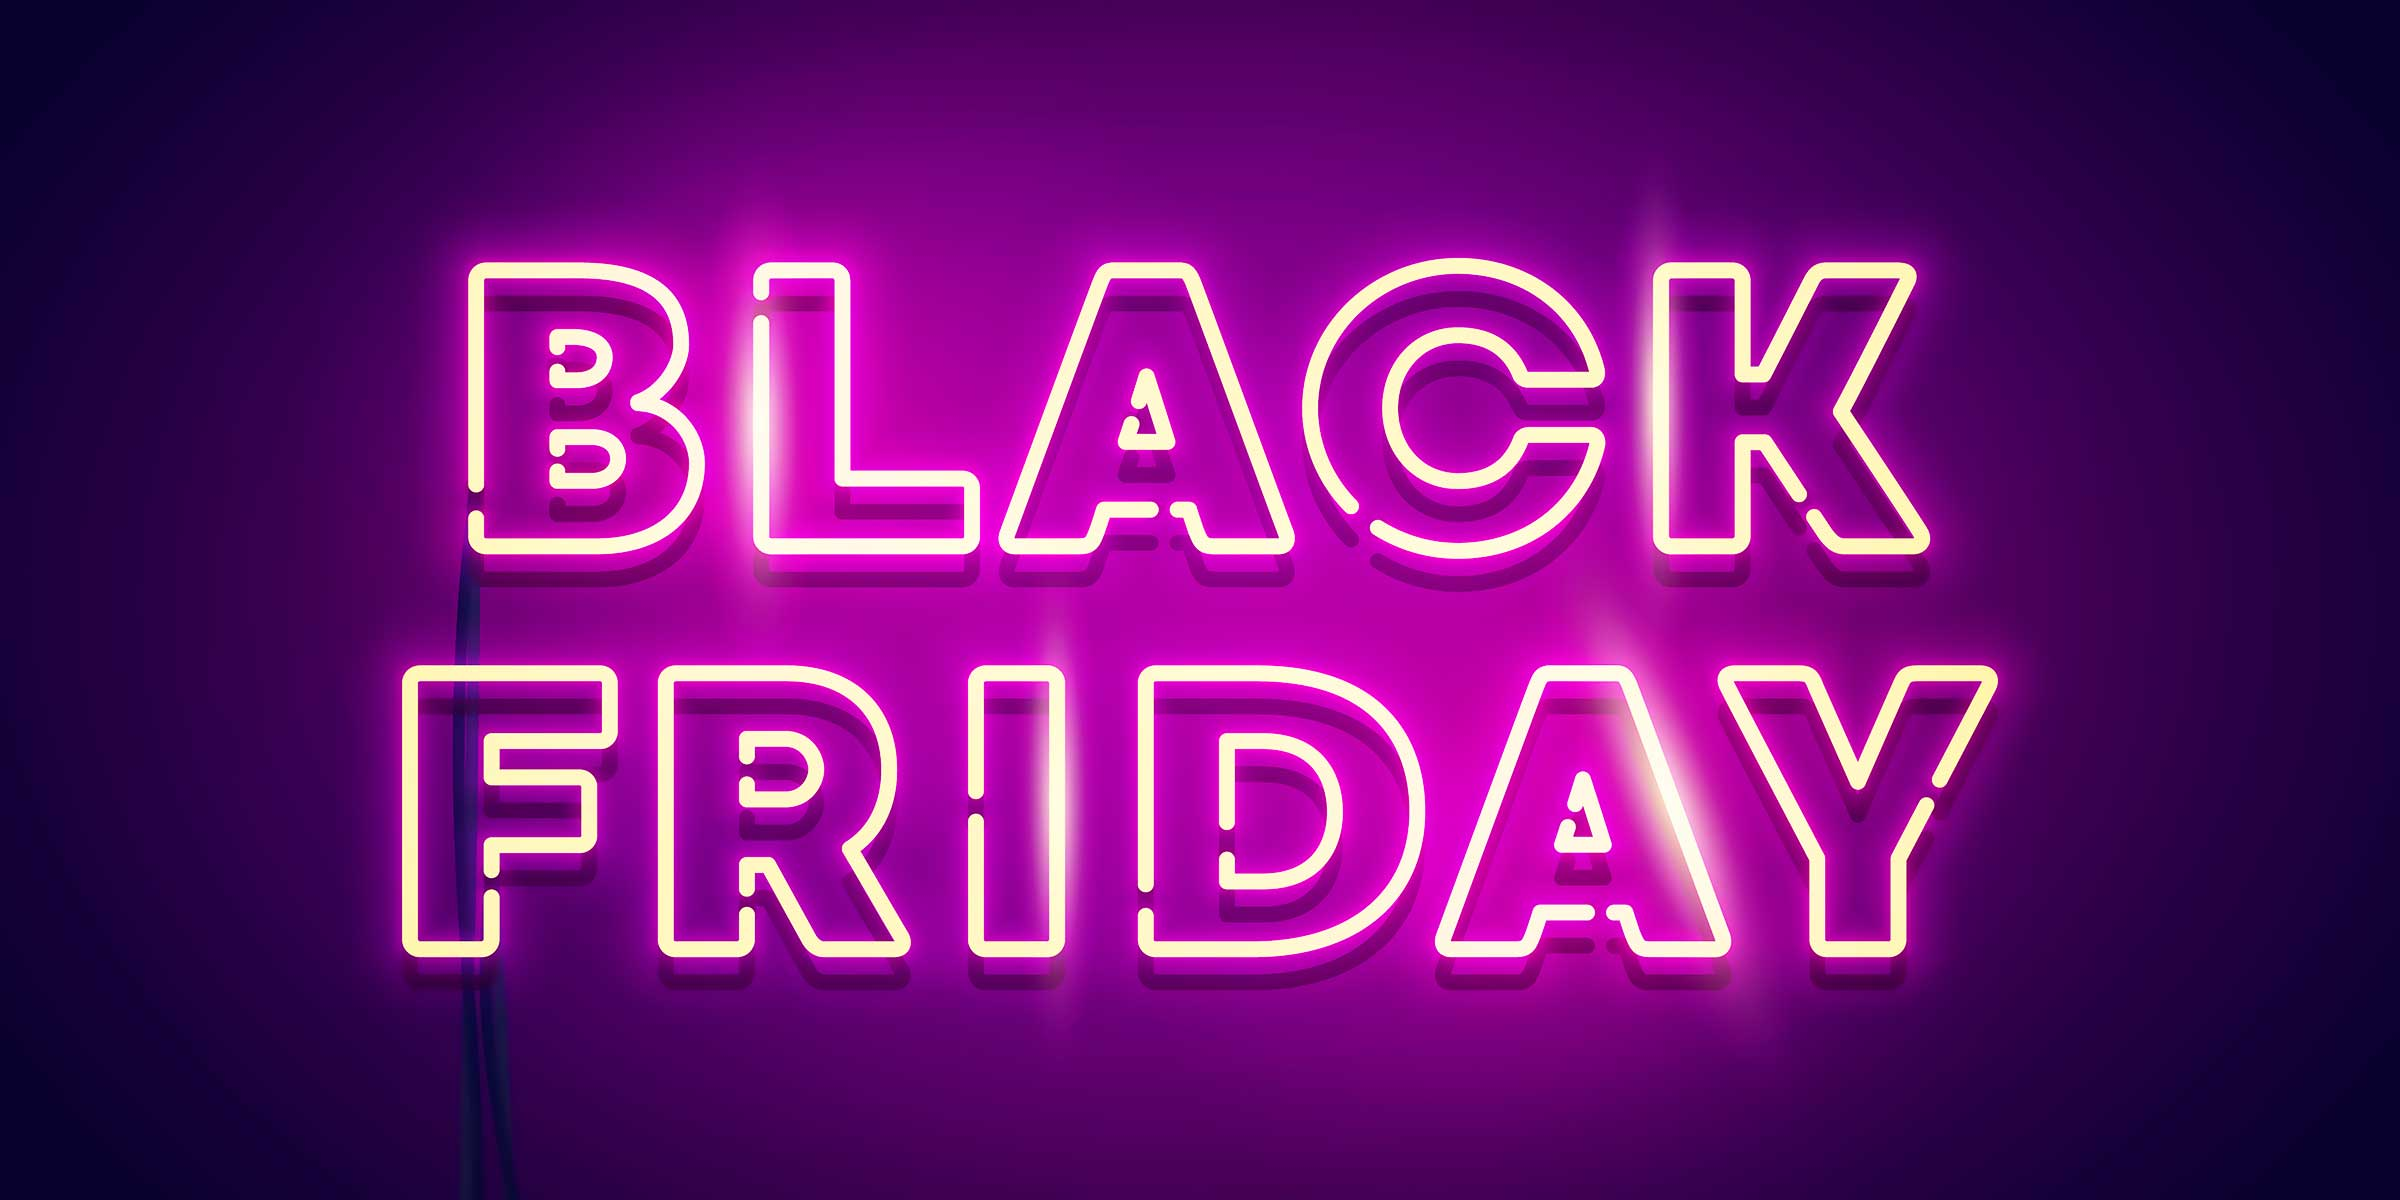 Epic Black Friday deals of all time